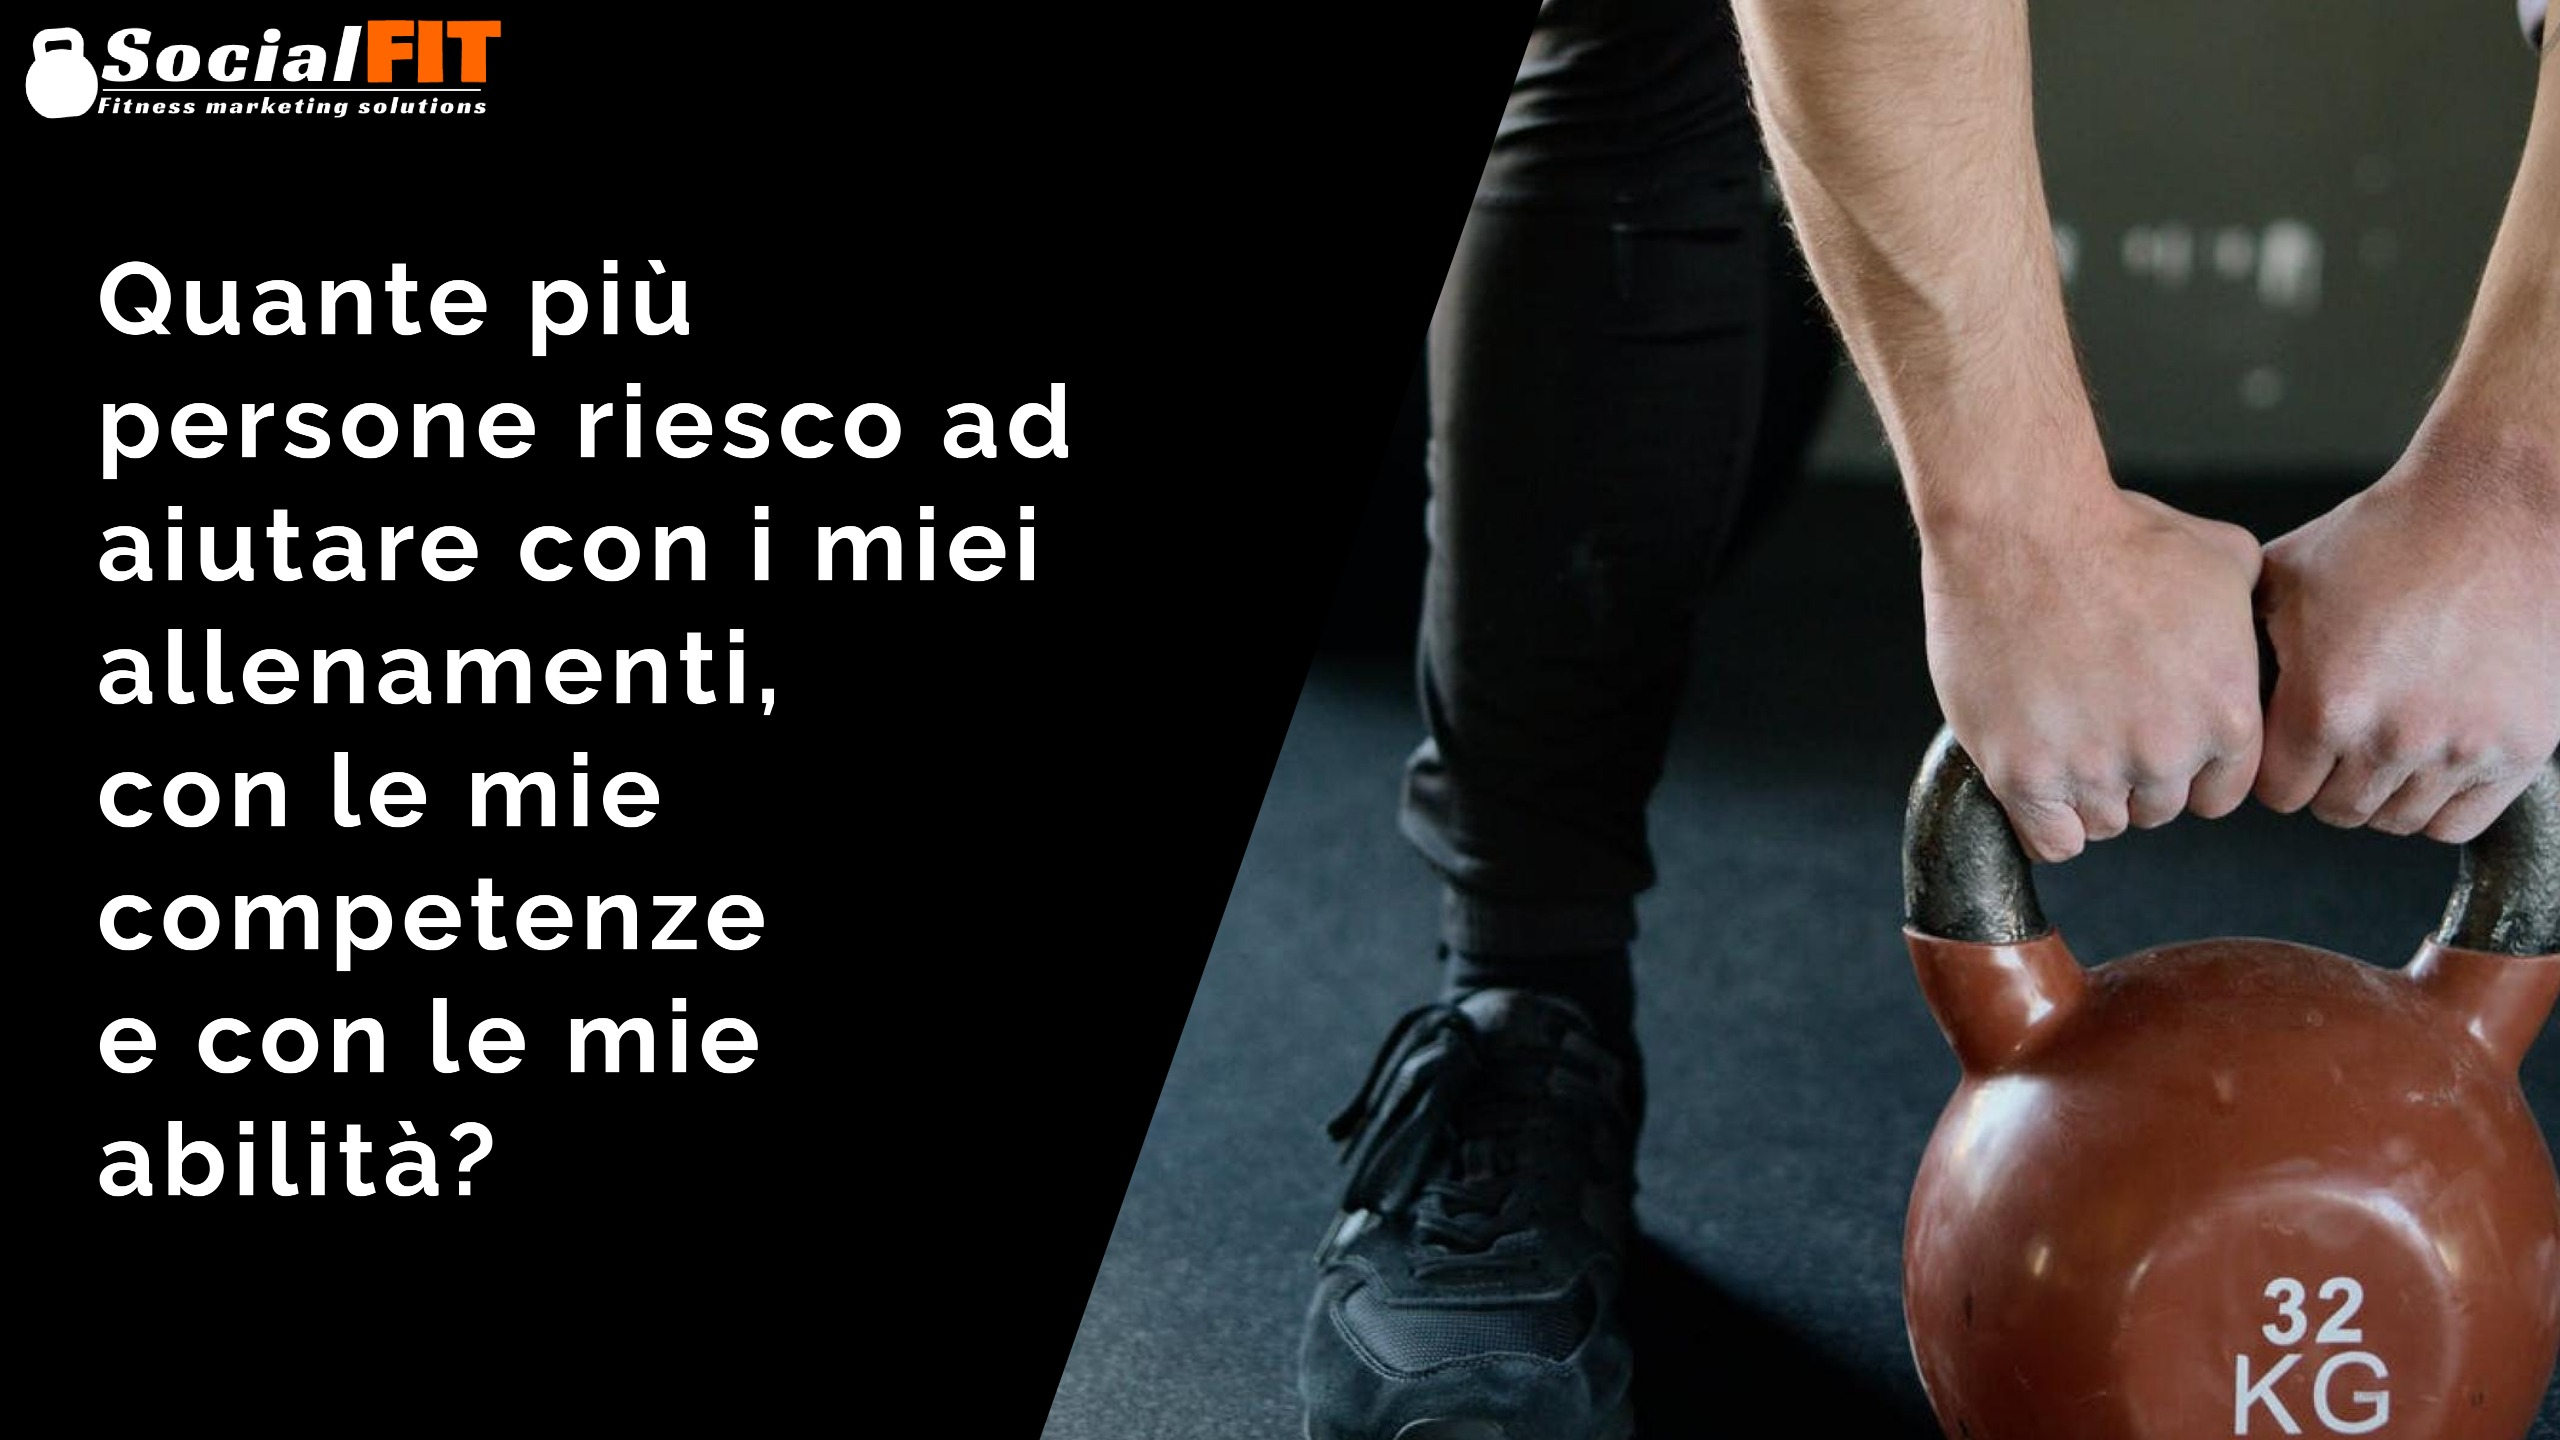 Digital fitness marketing, personal trainer, crossfit